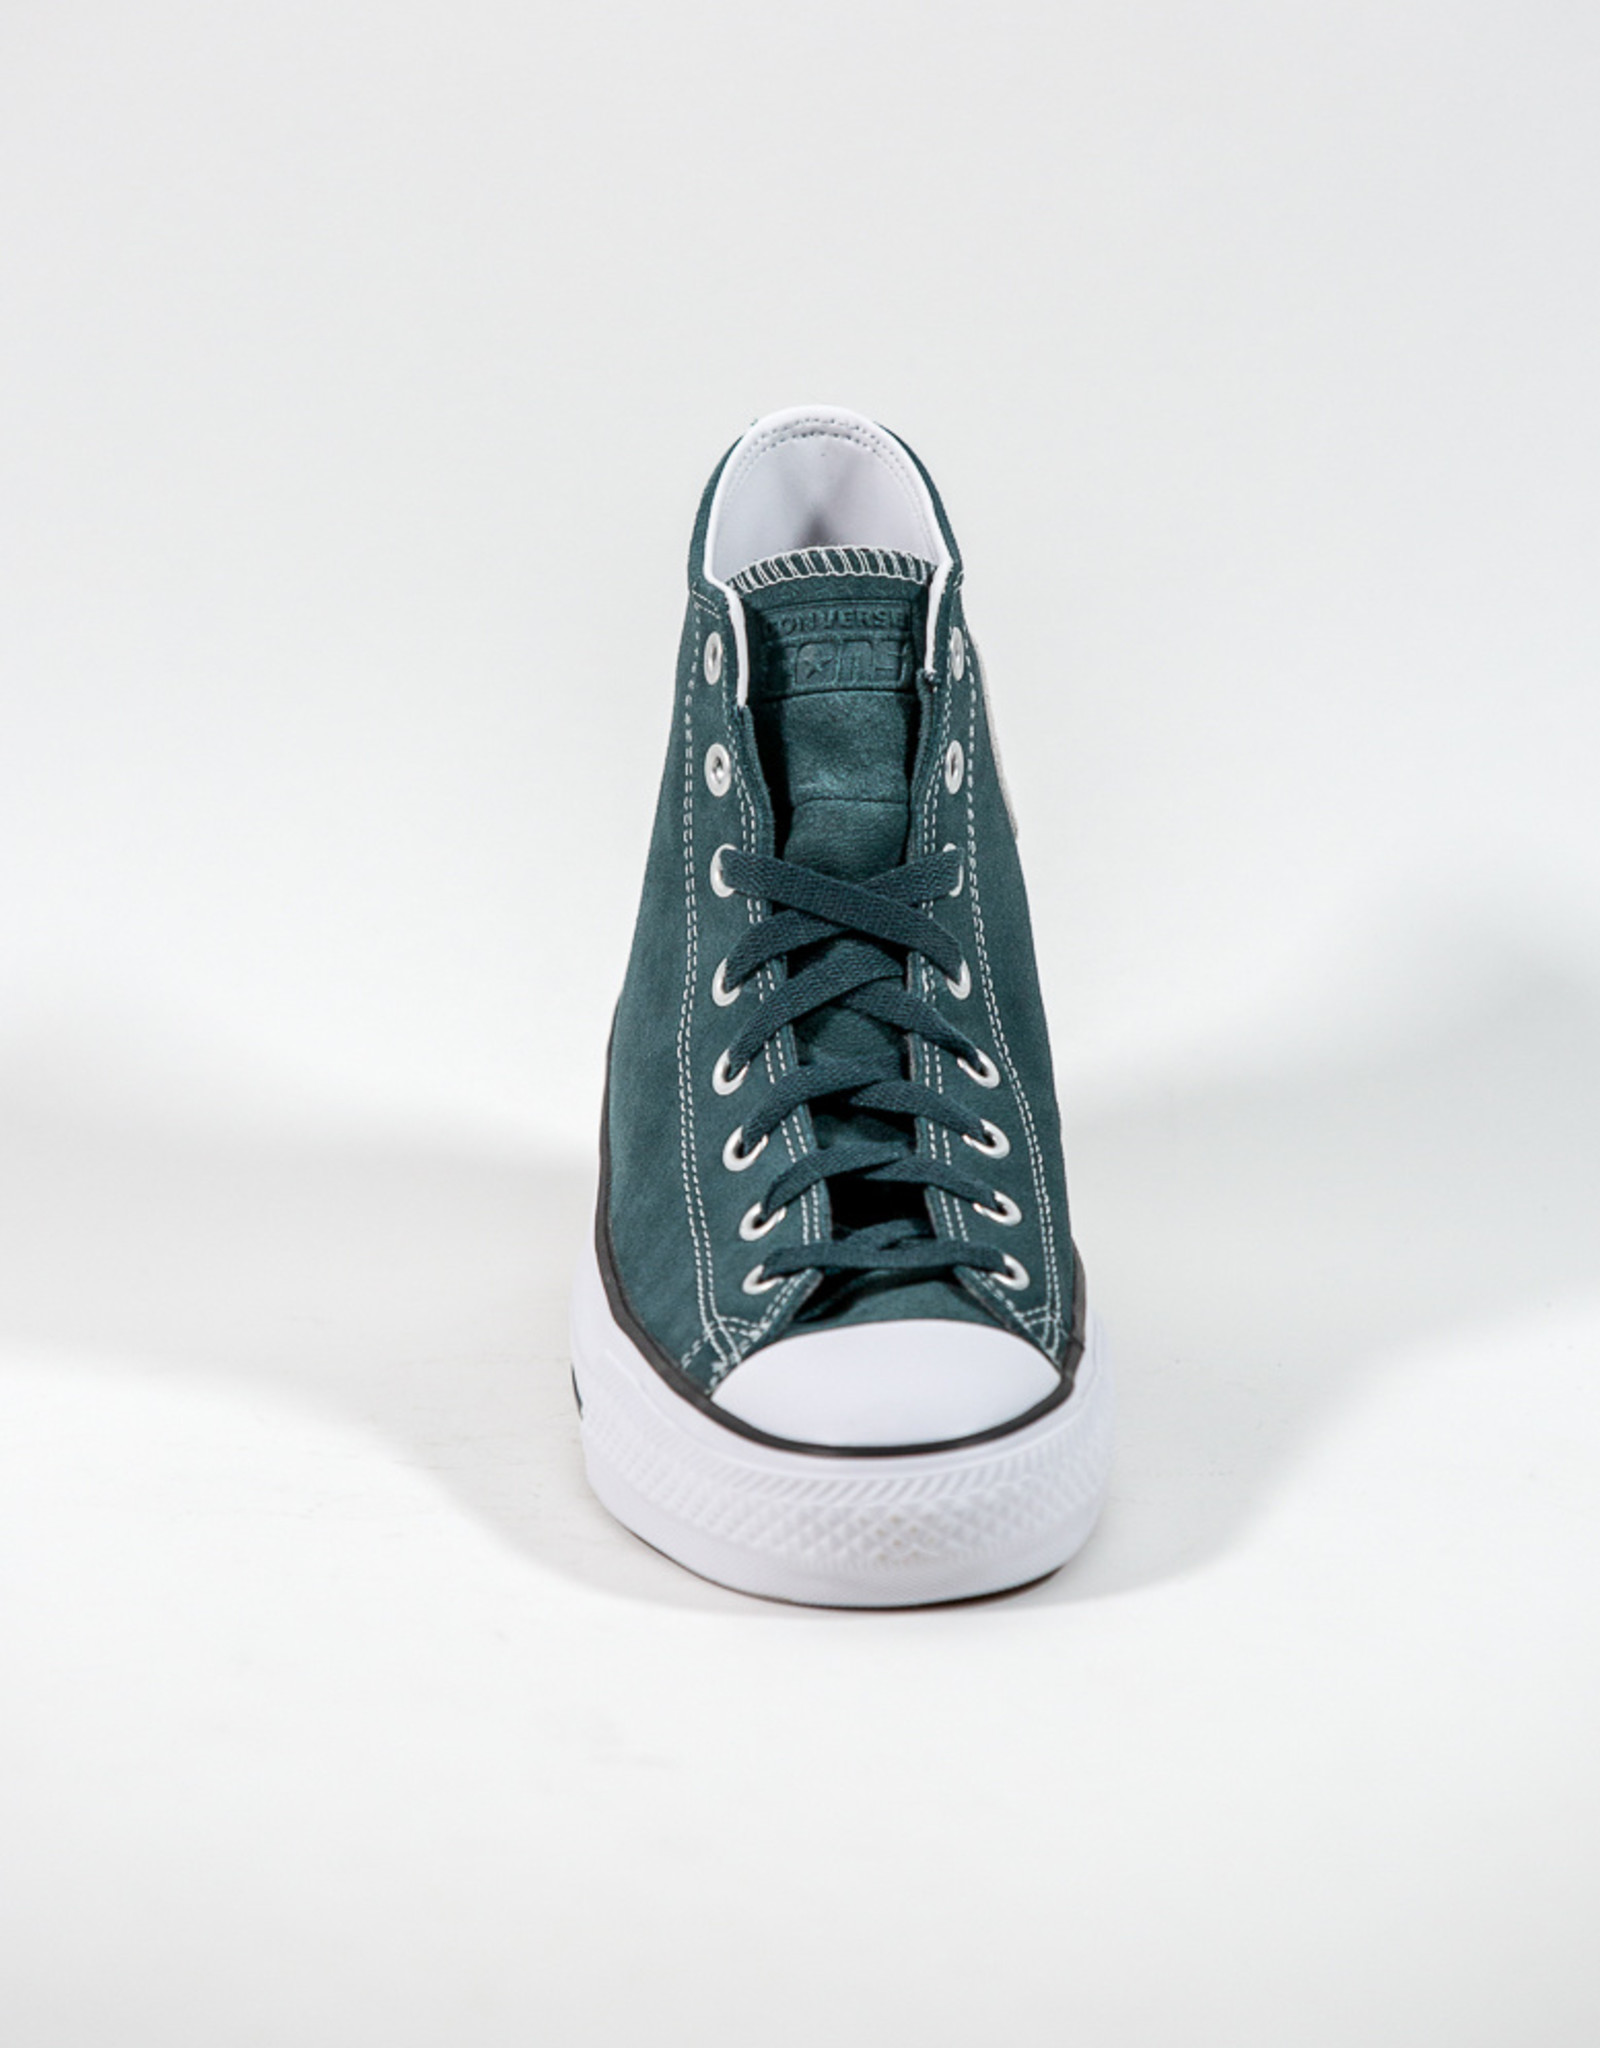 CONVERSE CONVERSE CONS CTAS PRO HI - FADED SPRUCE/WHITE